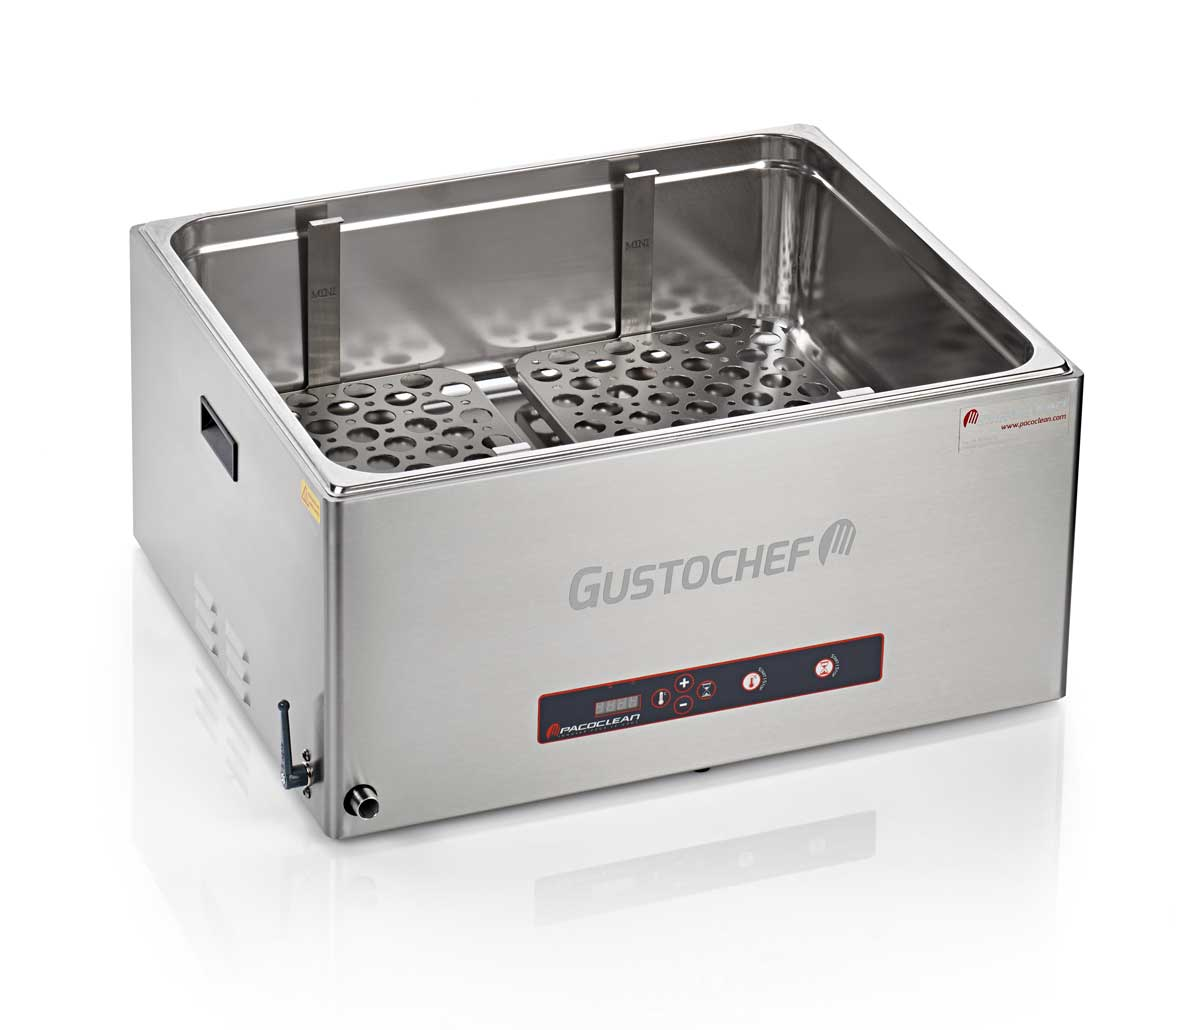 Gustochef-58L-open-pacoclean